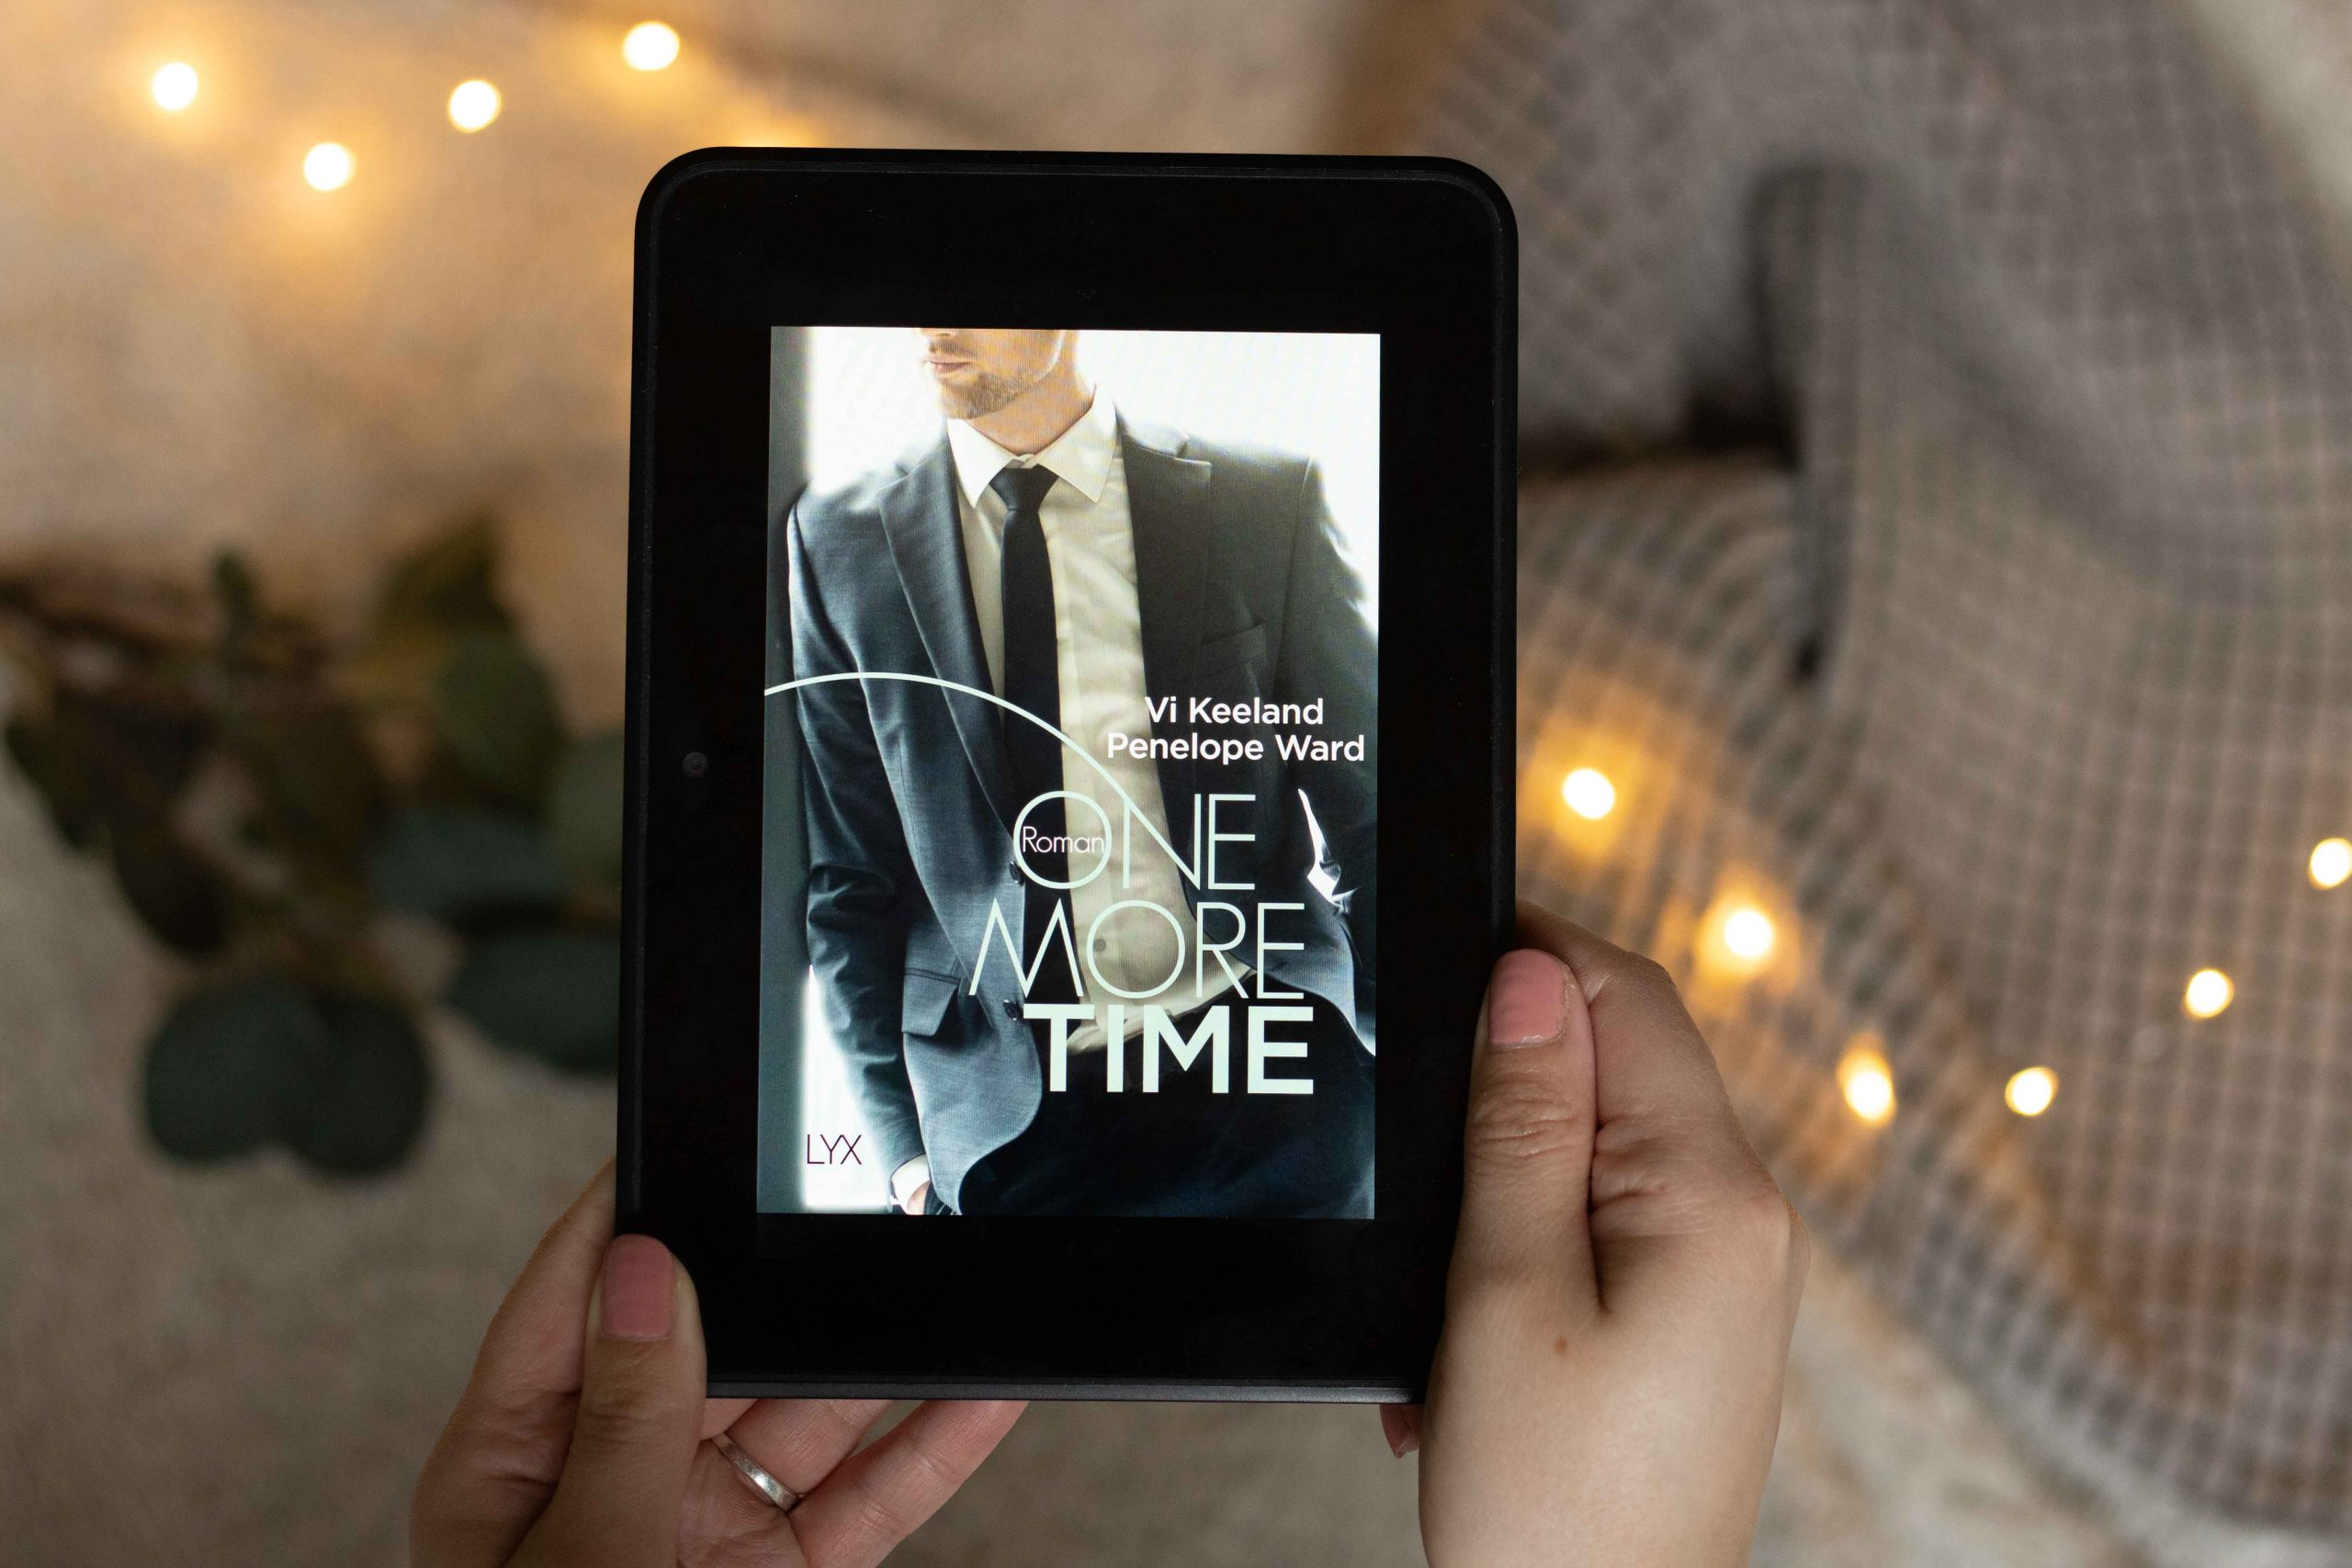 One More Time | Vi Keeland & Penelope Ward